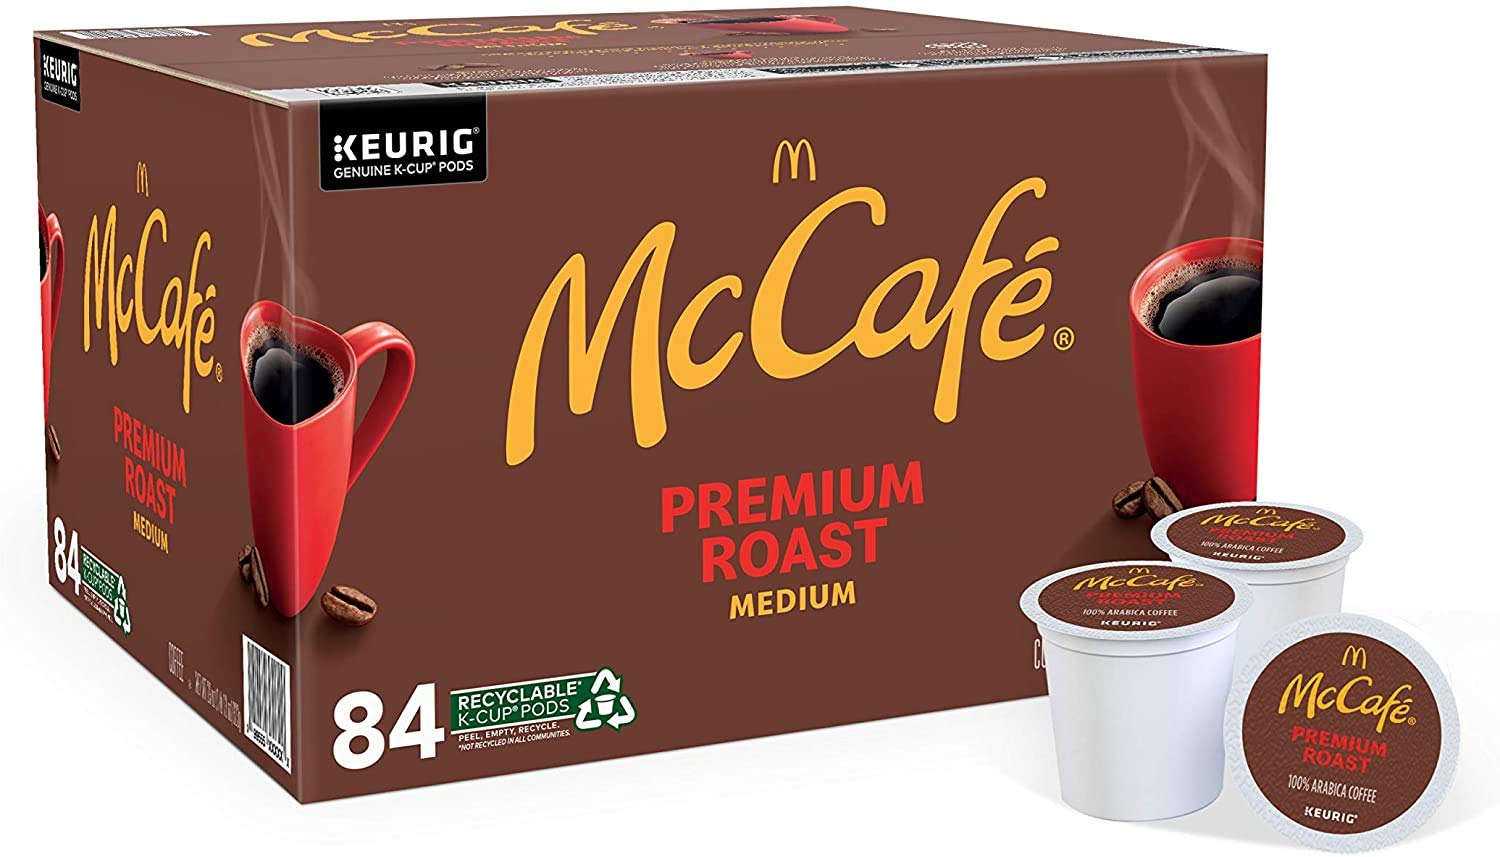 McCafe Premium Medium Roast K-Cup Coffee Pods